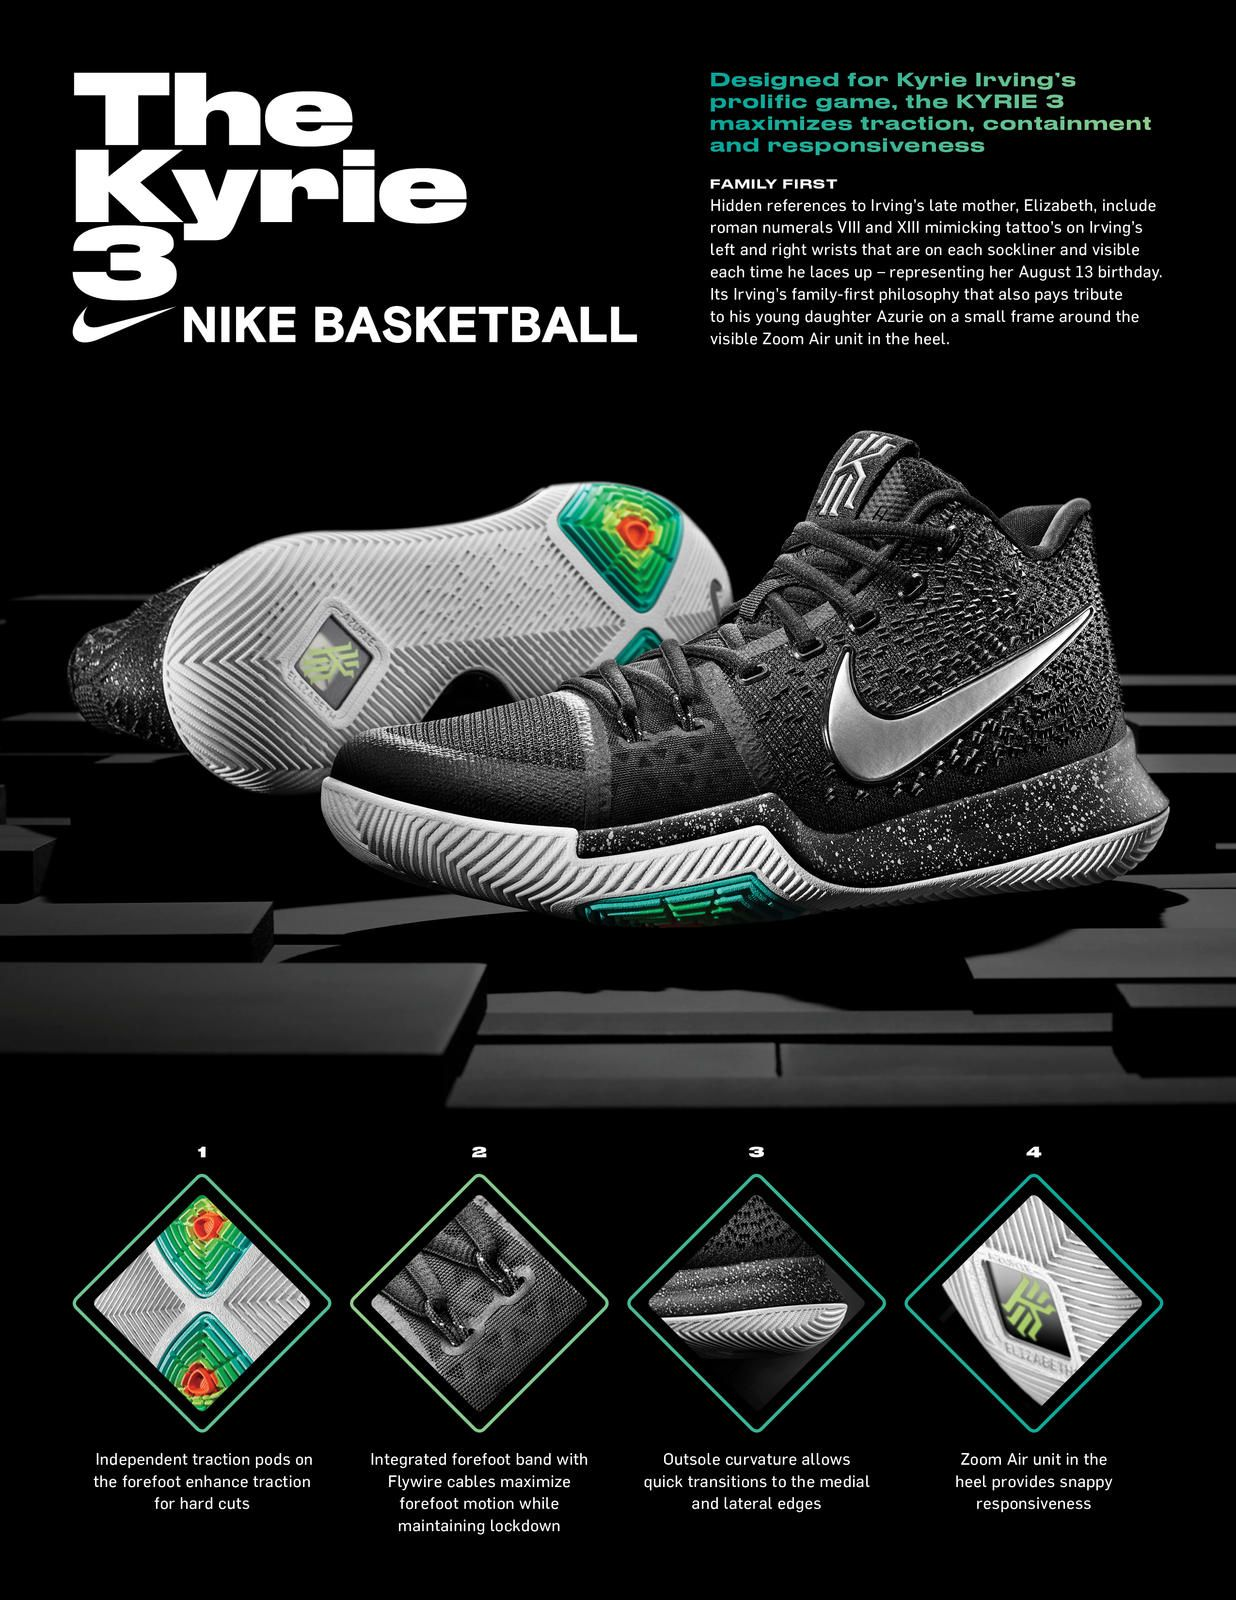 kyrie3_tech_sheet_3_native_1600